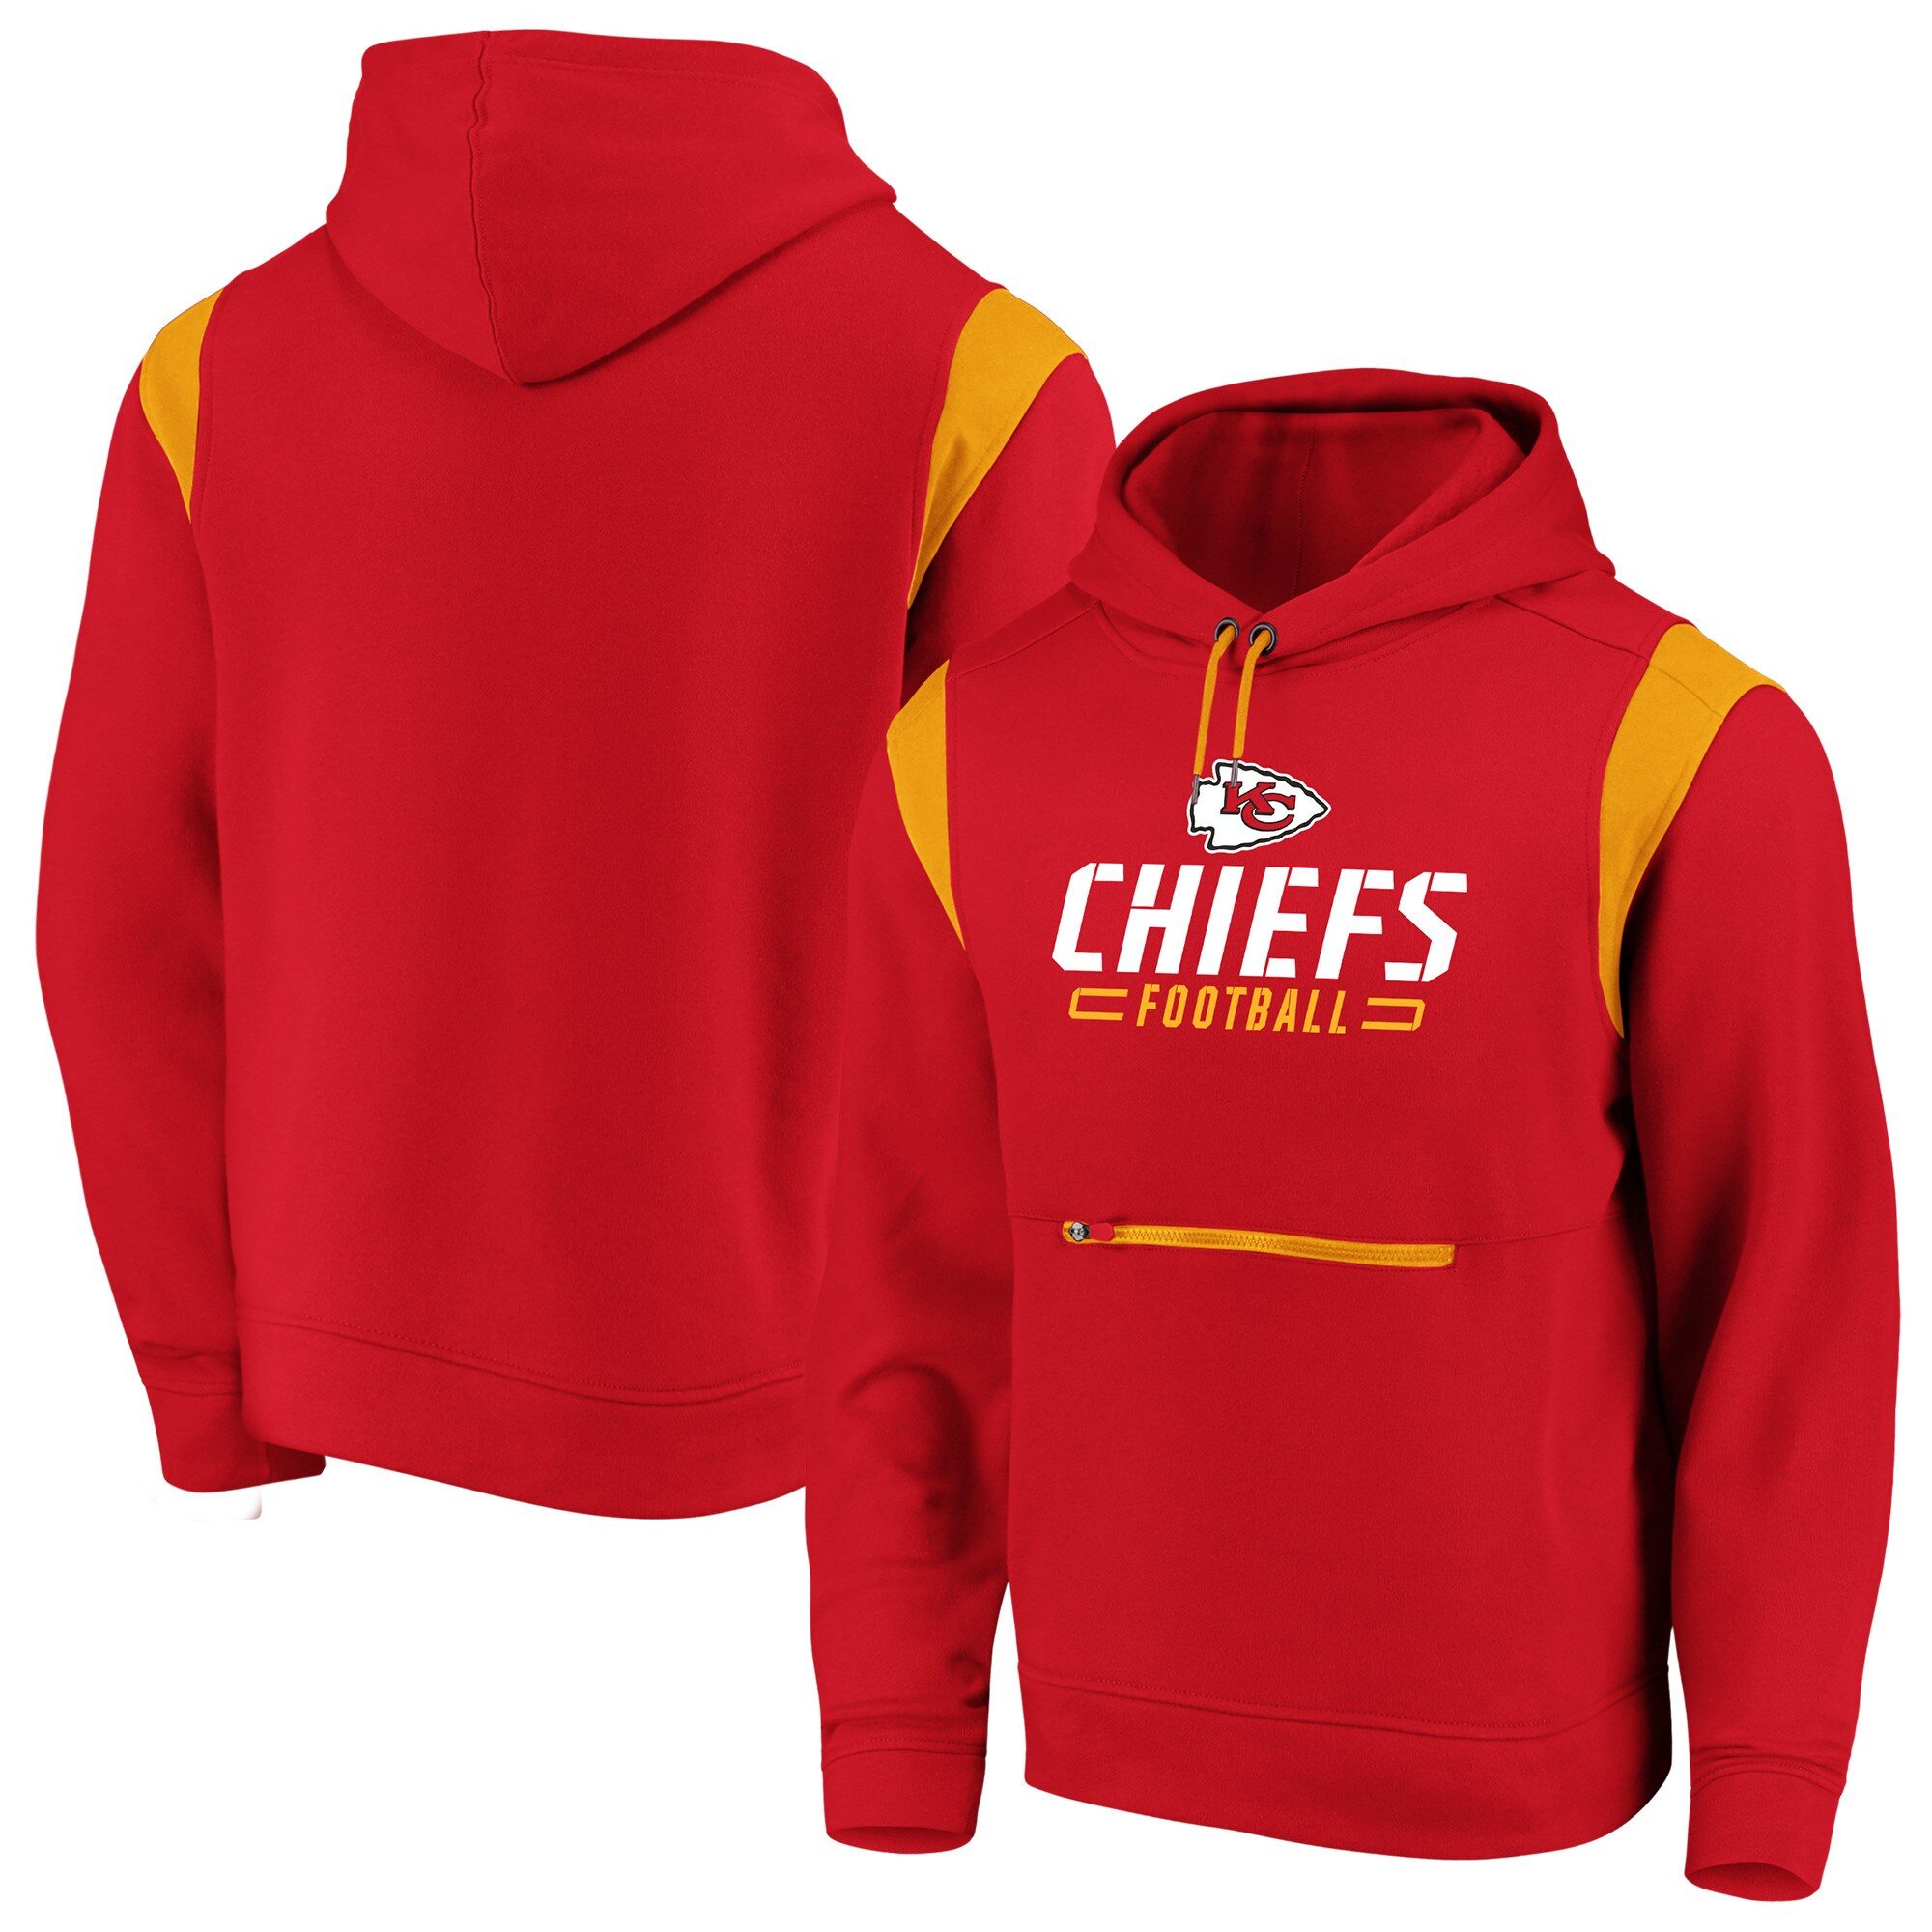 Kansas City Chiefs NFL Pro Line by Fanatics Branded Iconic Overdrive Pullover Hoodie - Red/Gold